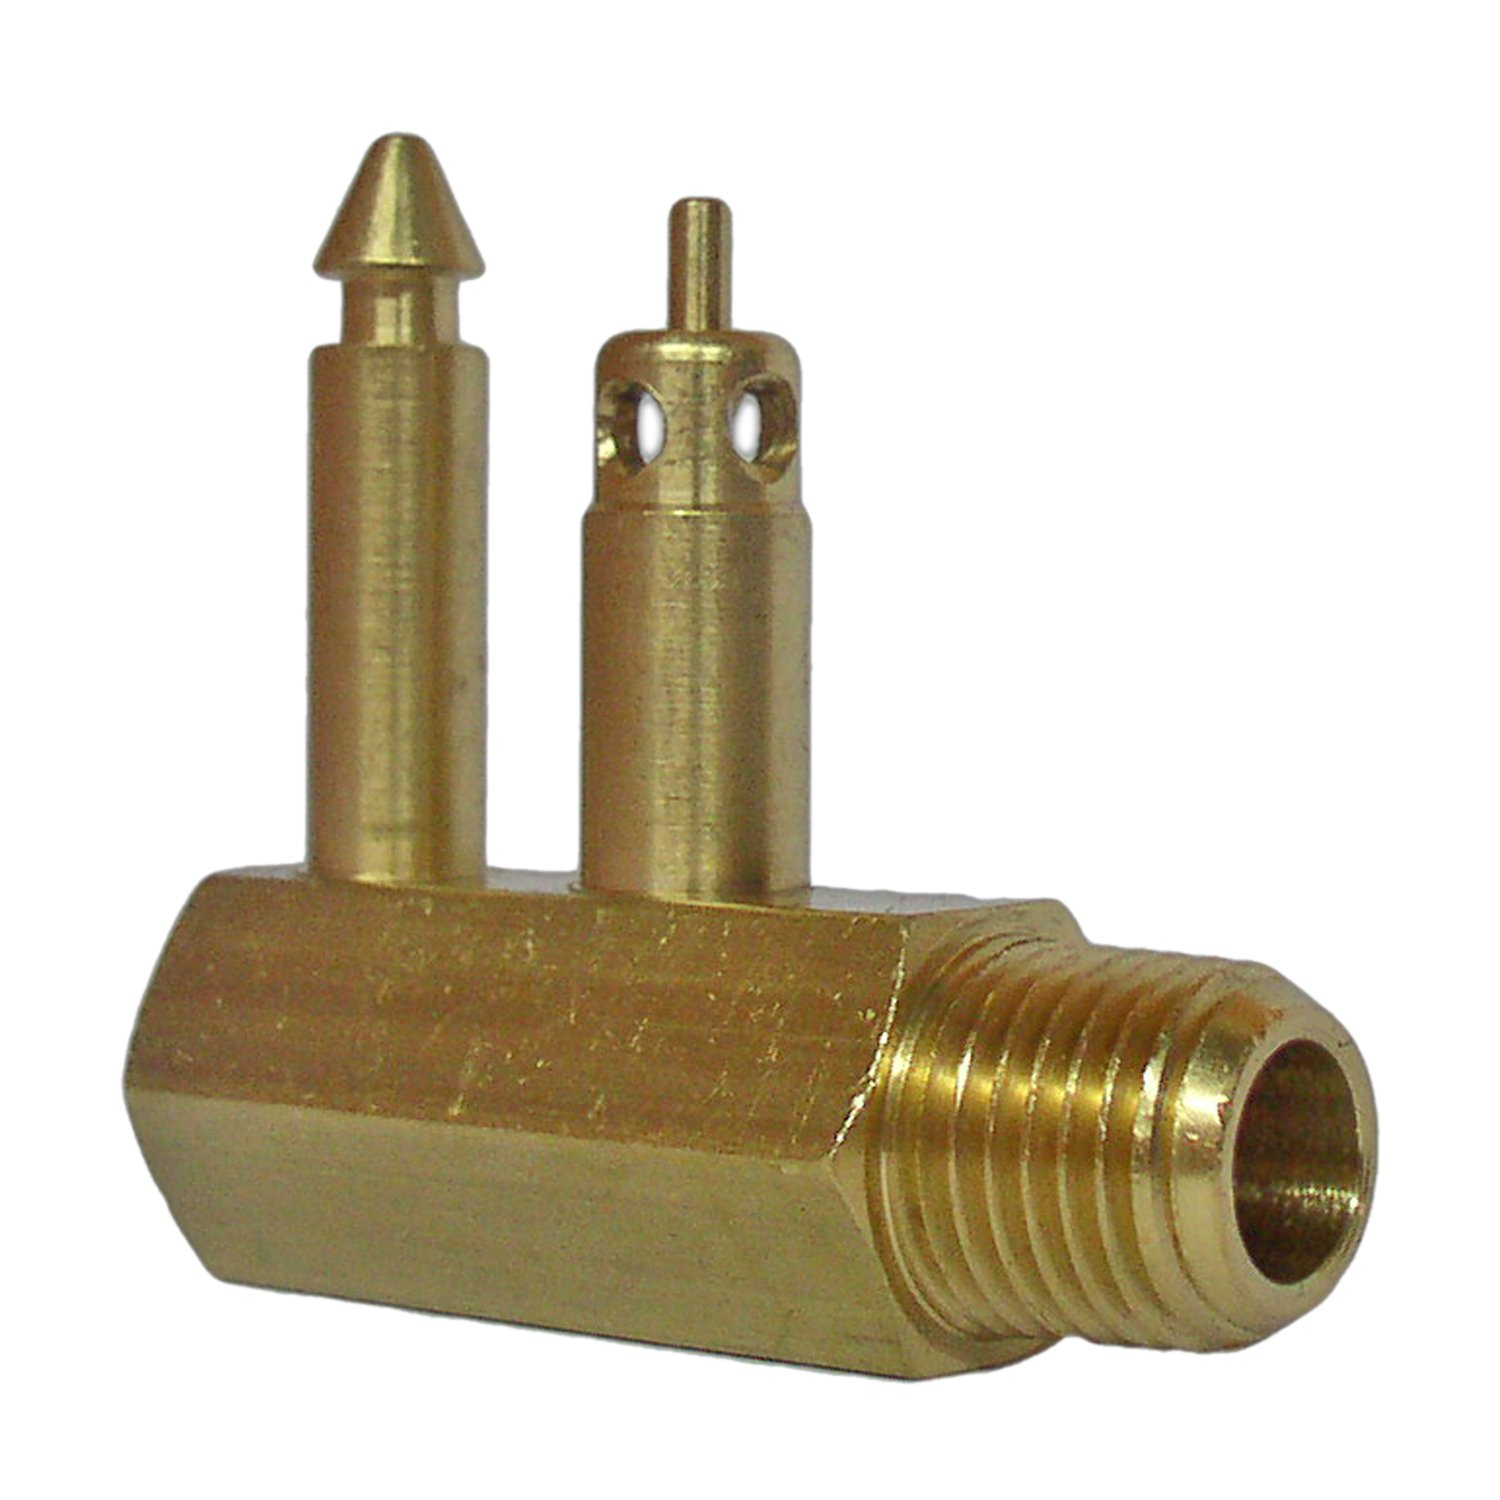 Five Oceans Fuel Line Brass Tank Male Connector for Mercury, 1/4'''' Npt, for Boat– FO-2899